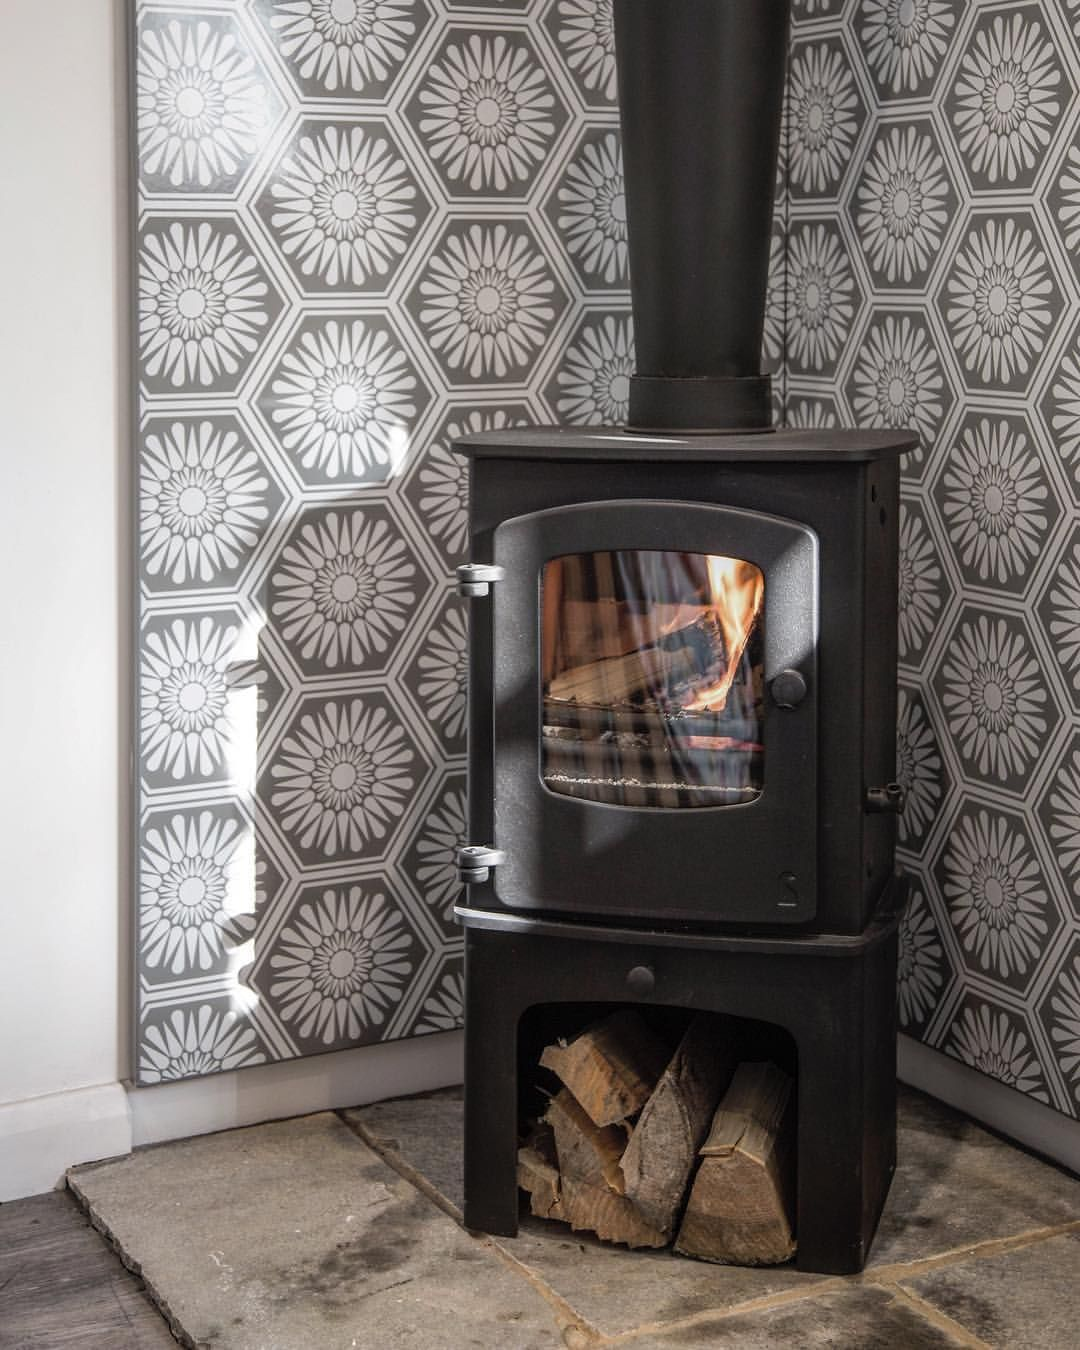 Vlaze Wall Mounted Heat Shield Set Designed To Protect The Wall Behind This Charnwoodstoves Cove 1 The Wood Stove Wall Corner Wood Stove Wood Stove Surround